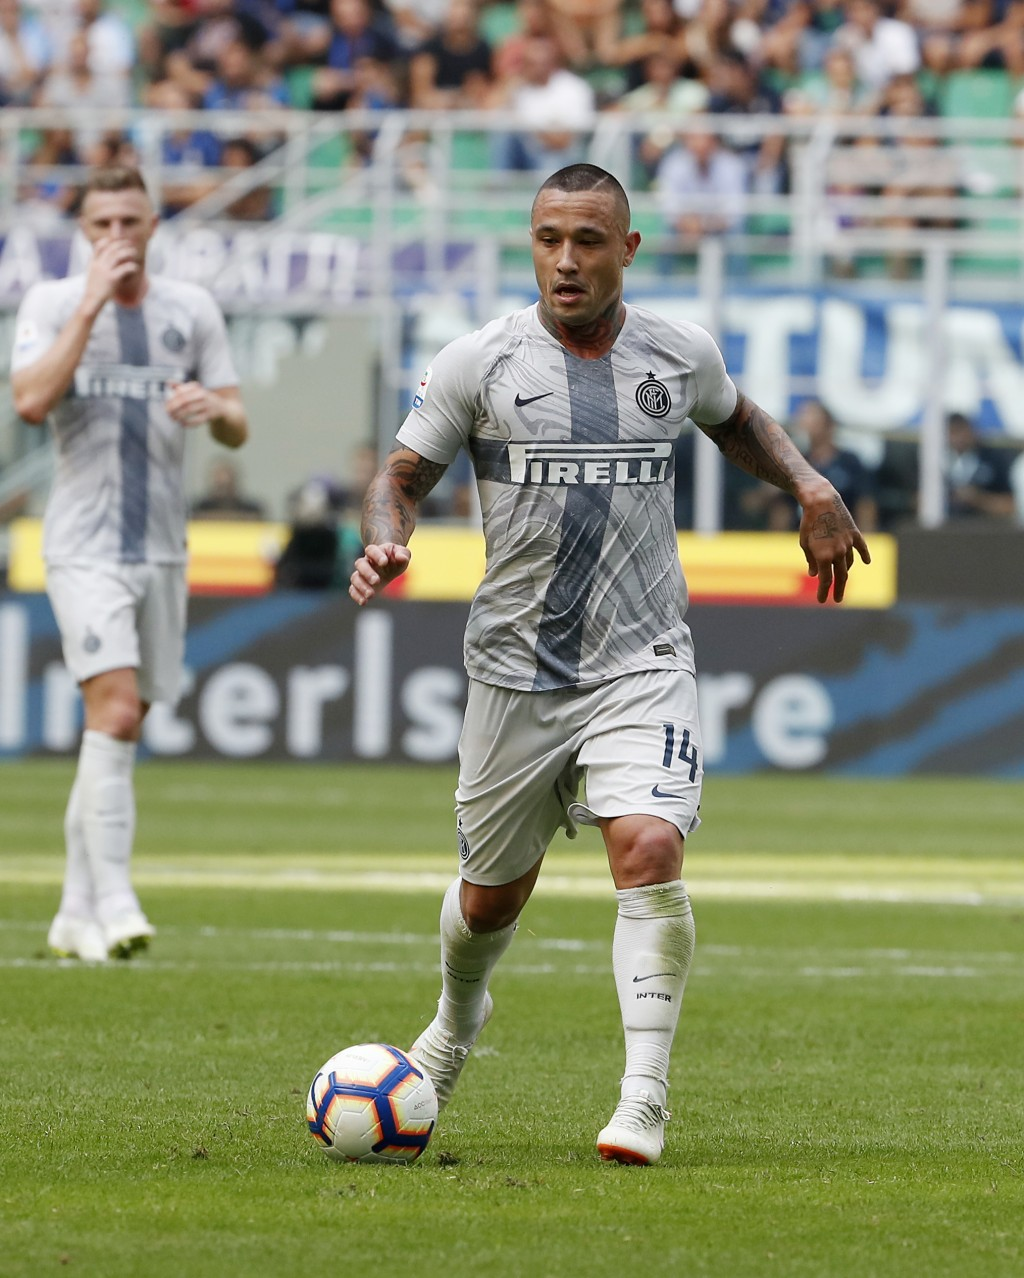 FILE - In this Saturday, Sept. 15, 2018 file photo Inter Milan's Radja Nainggolan controls the ball during the Serie A soccer match between Inter Mila